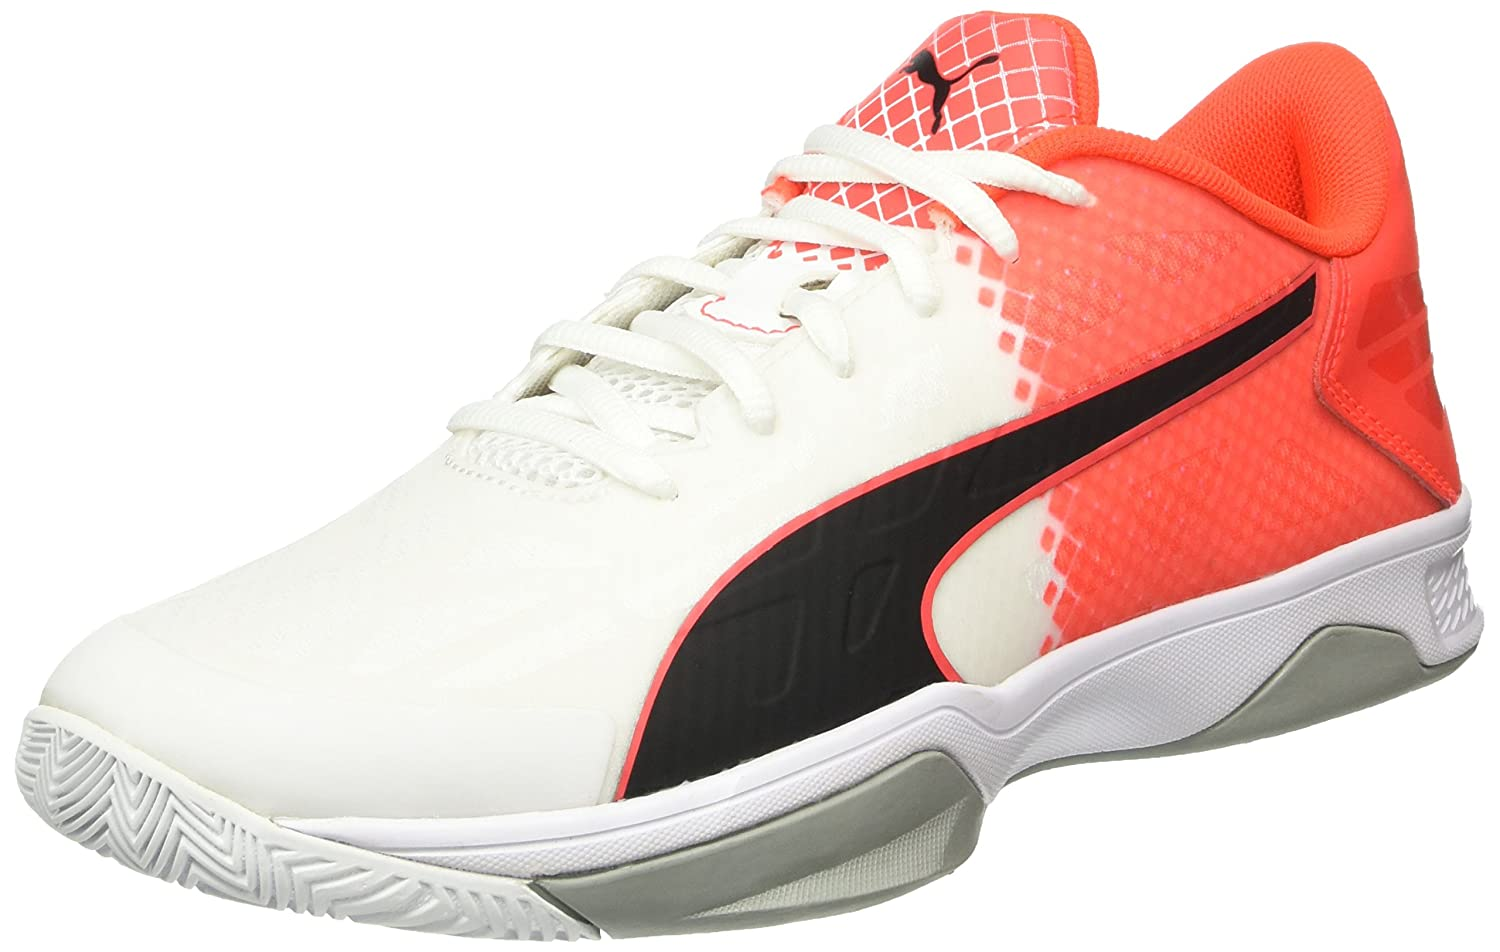 Puma Evospeed Indoor 3.5, Chaussures de Fitness Mixte Adulte 103667